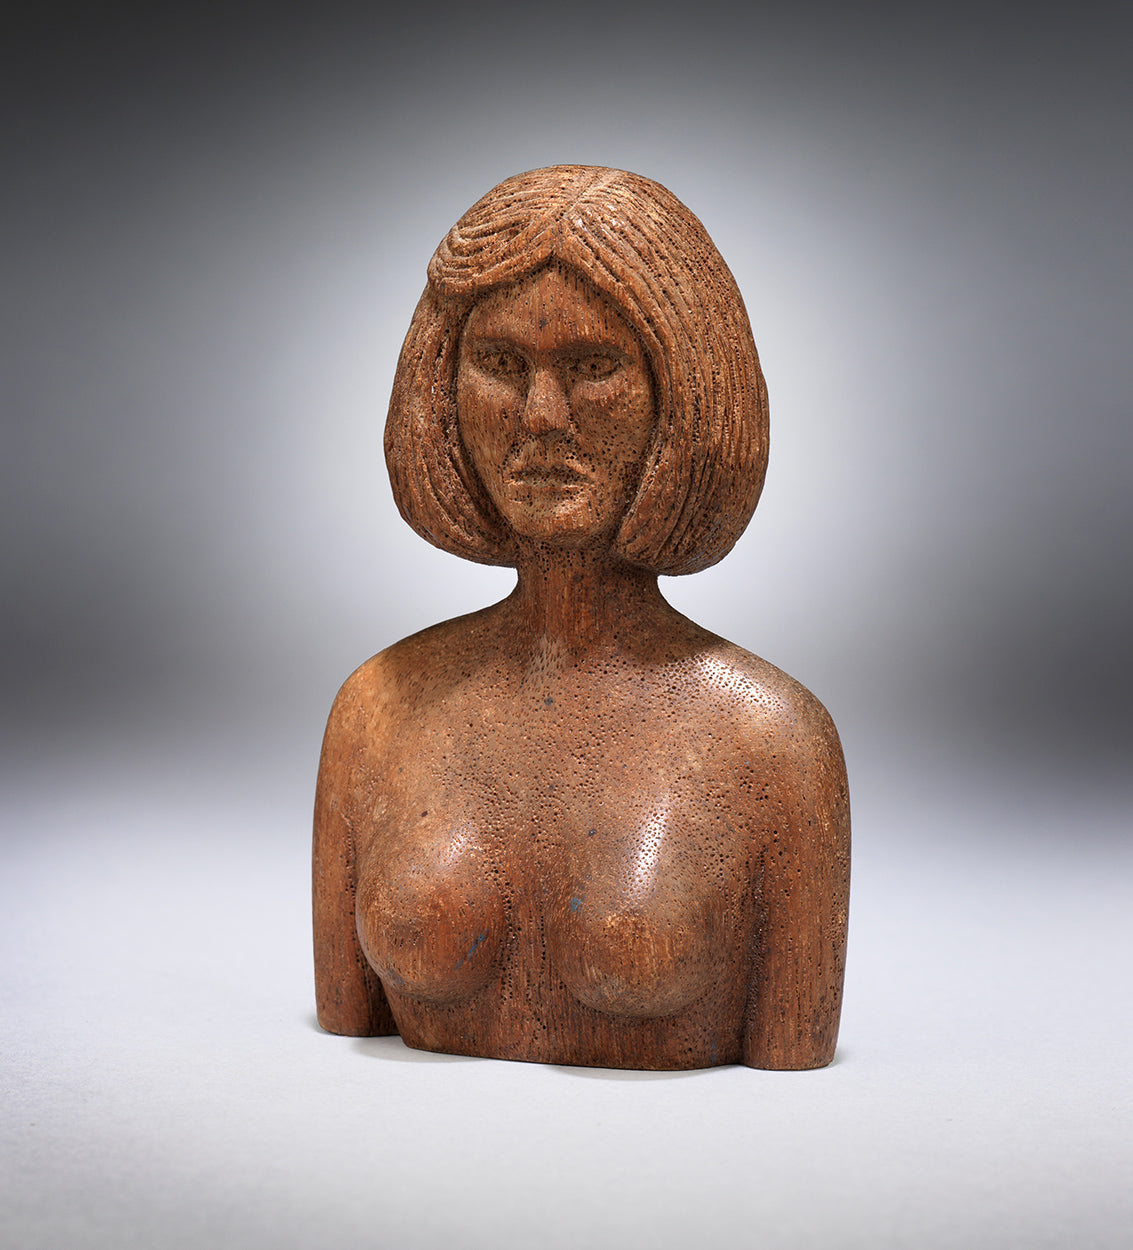 Diminutive Folk Art Sculpture of a Topless Lady